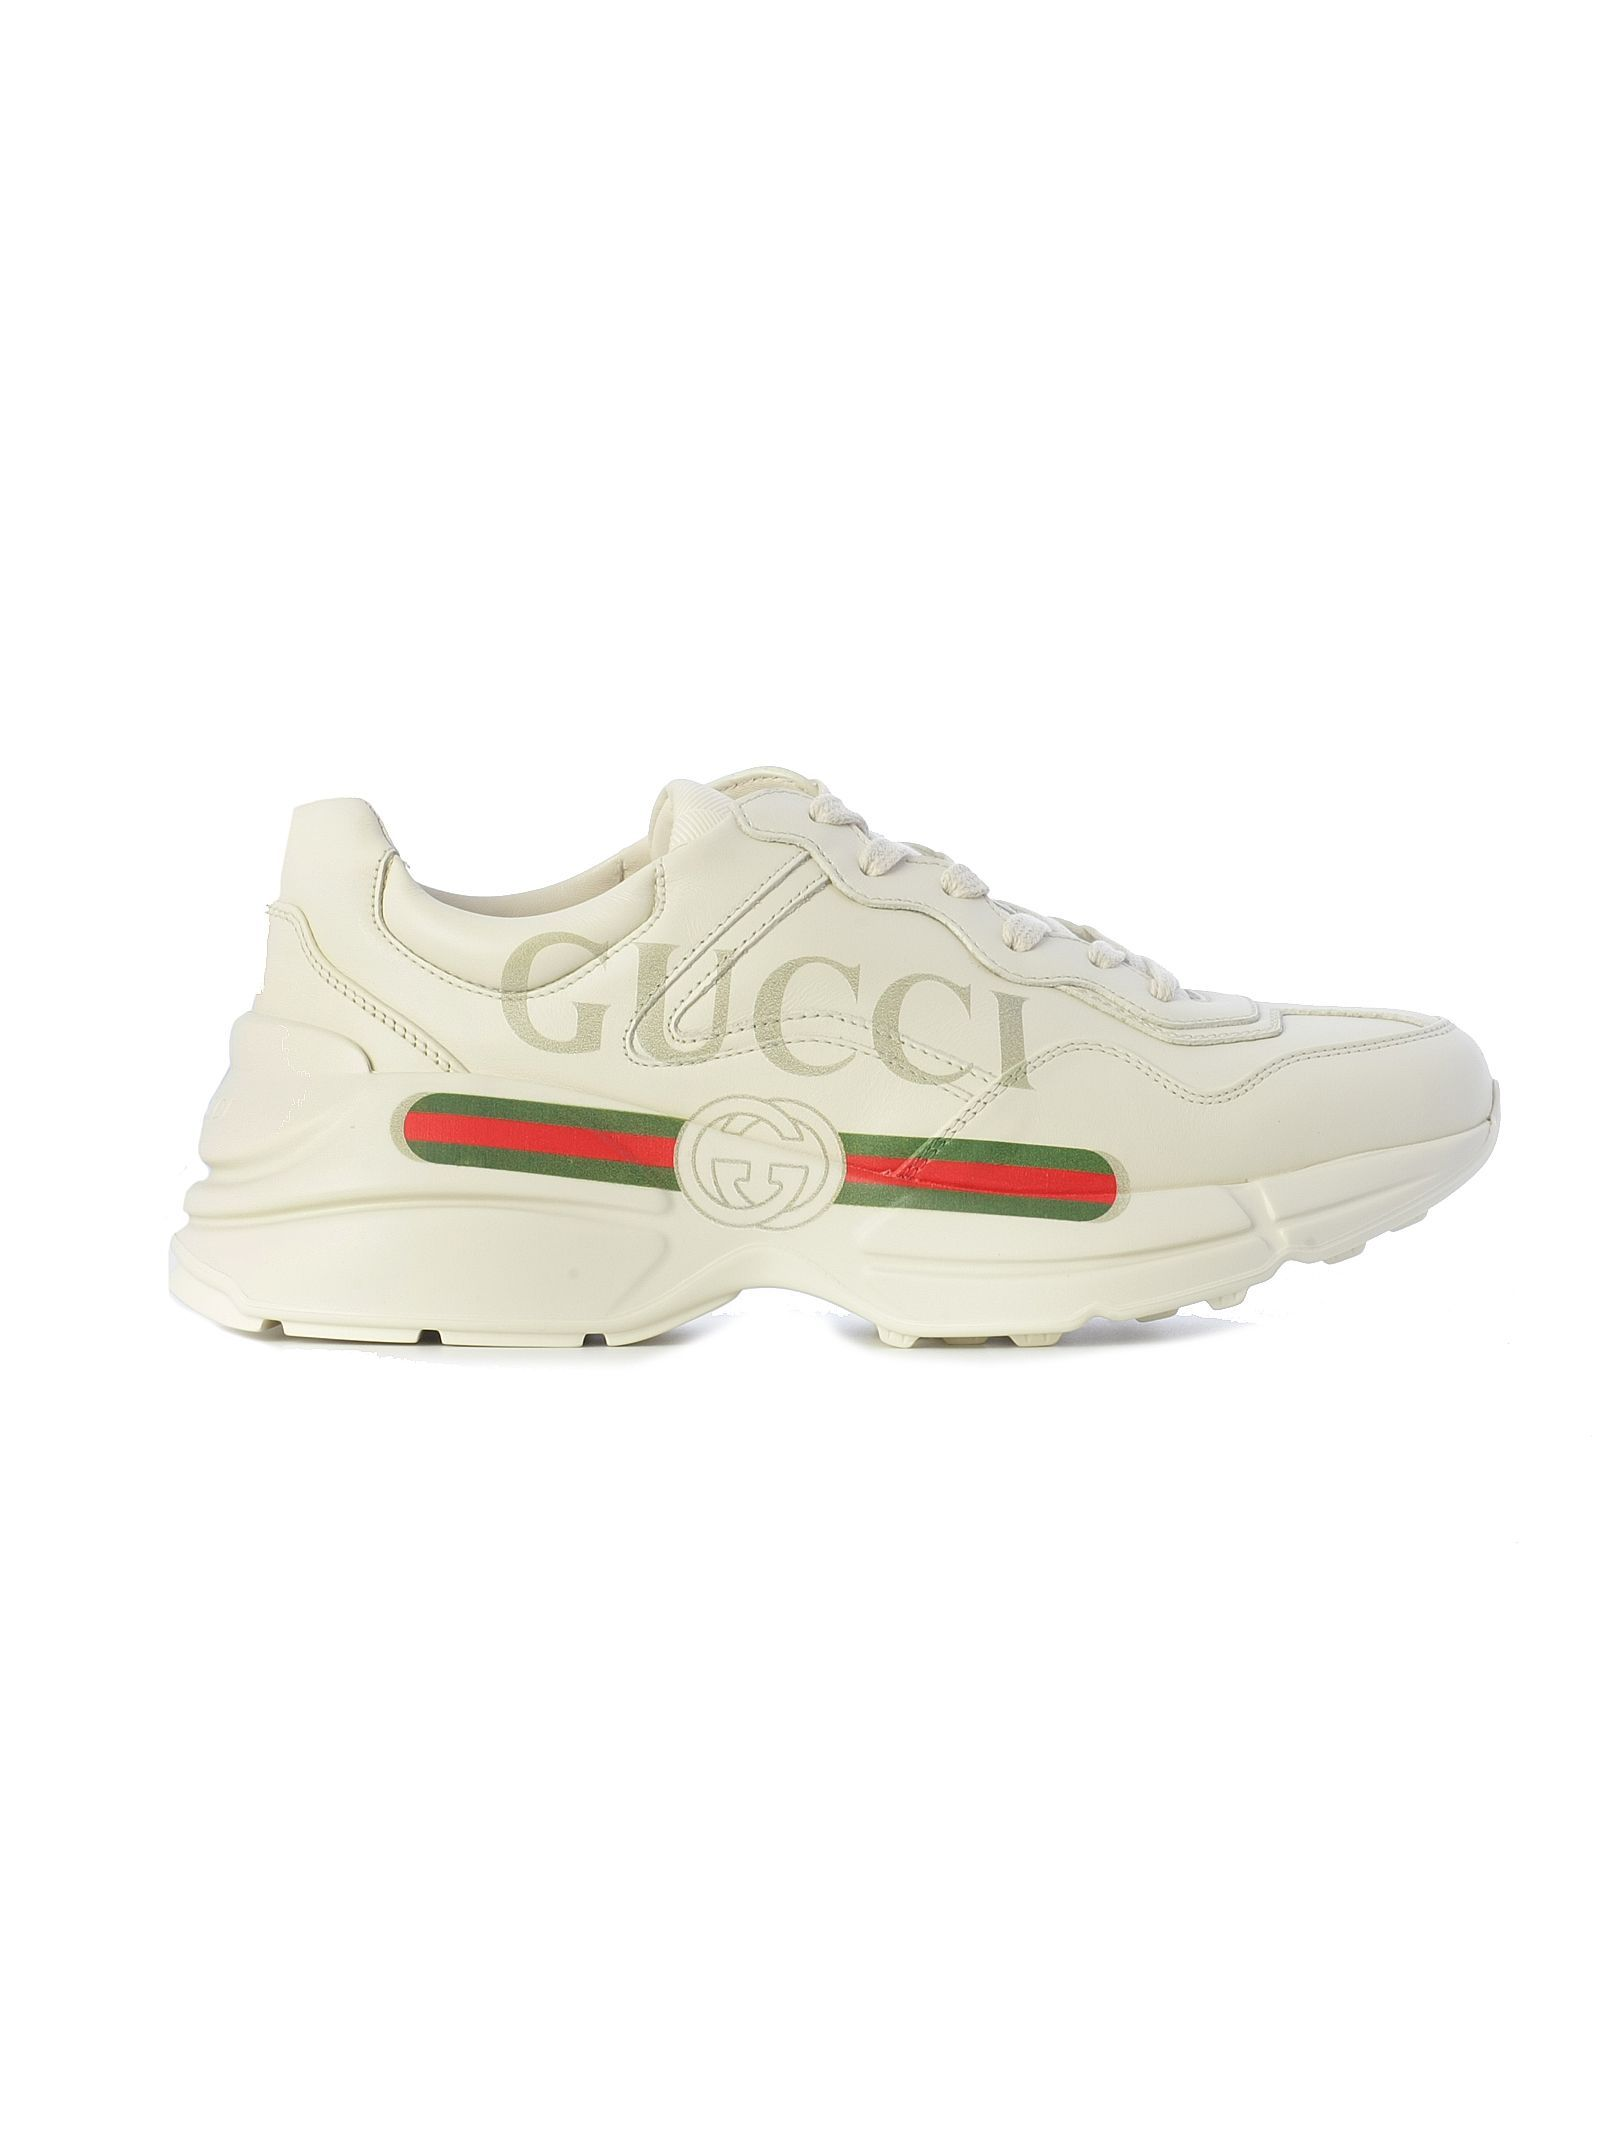 a379882245c GUCCI RHYTON FAKE LOGO SNEAKERS. #gucci #shoes | Gucci in 2019 ...